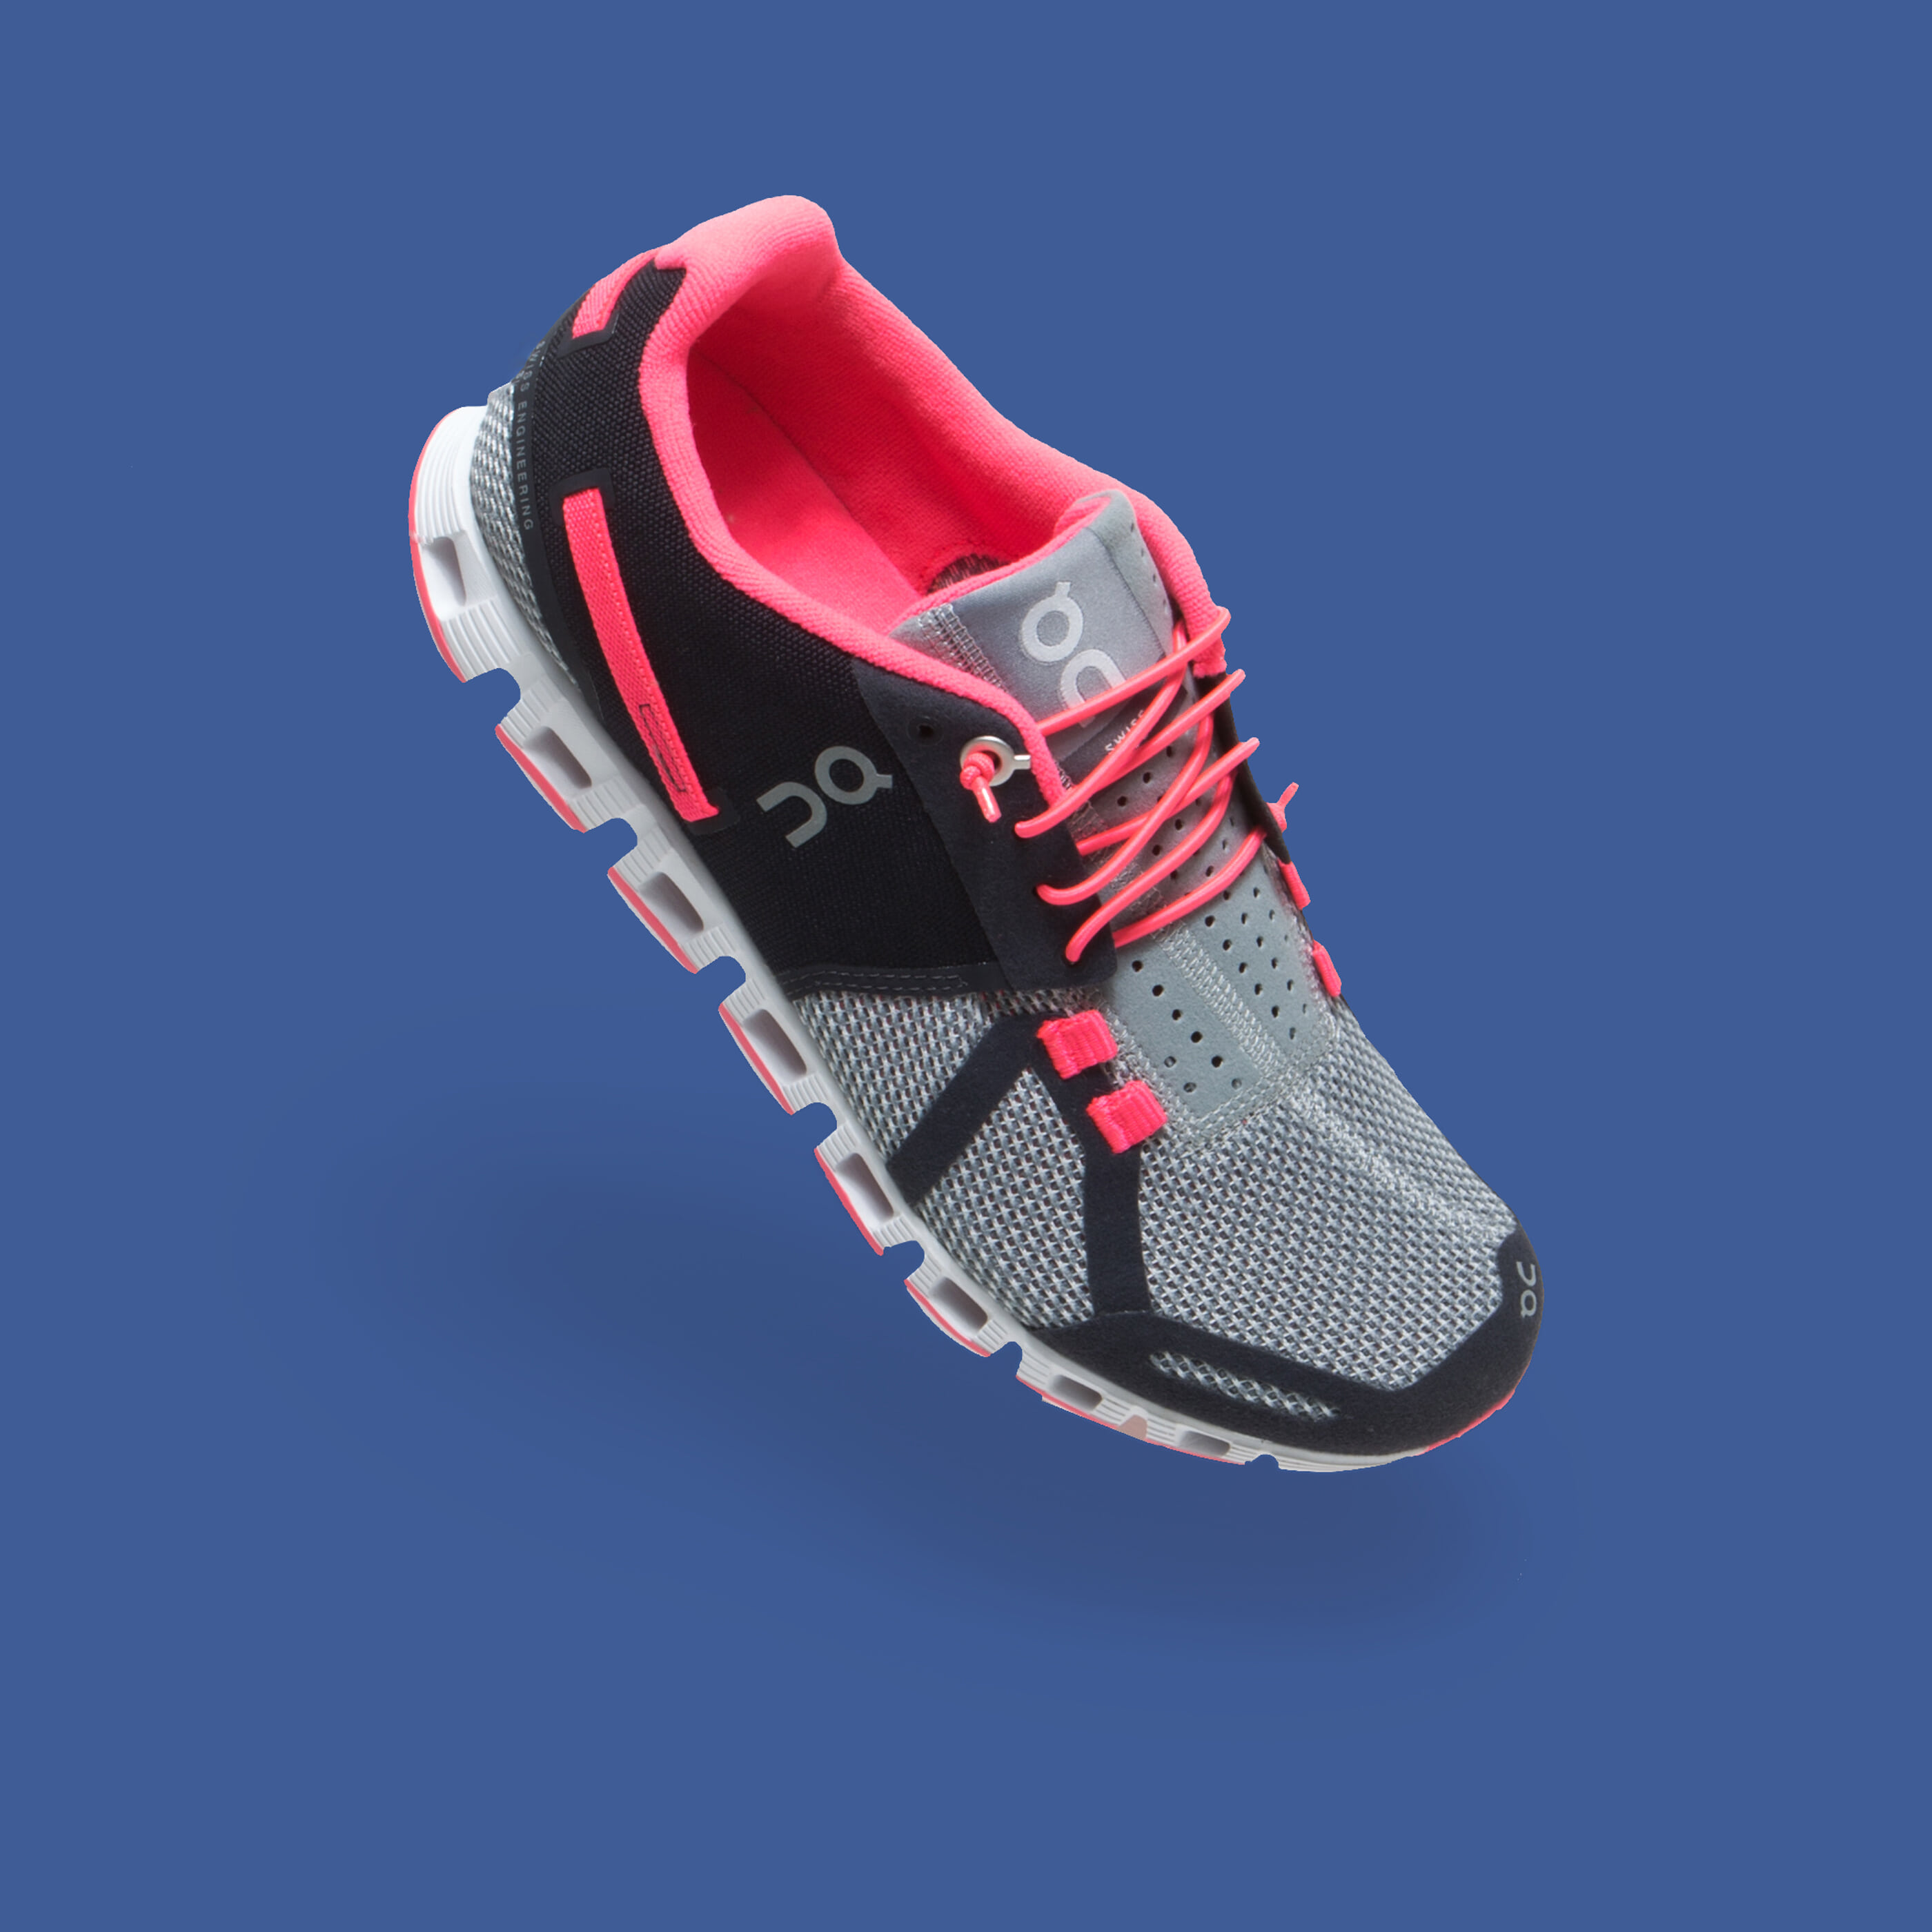 on cloud the world 39 s lightest fully cushioned running shoe. Black Bedroom Furniture Sets. Home Design Ideas